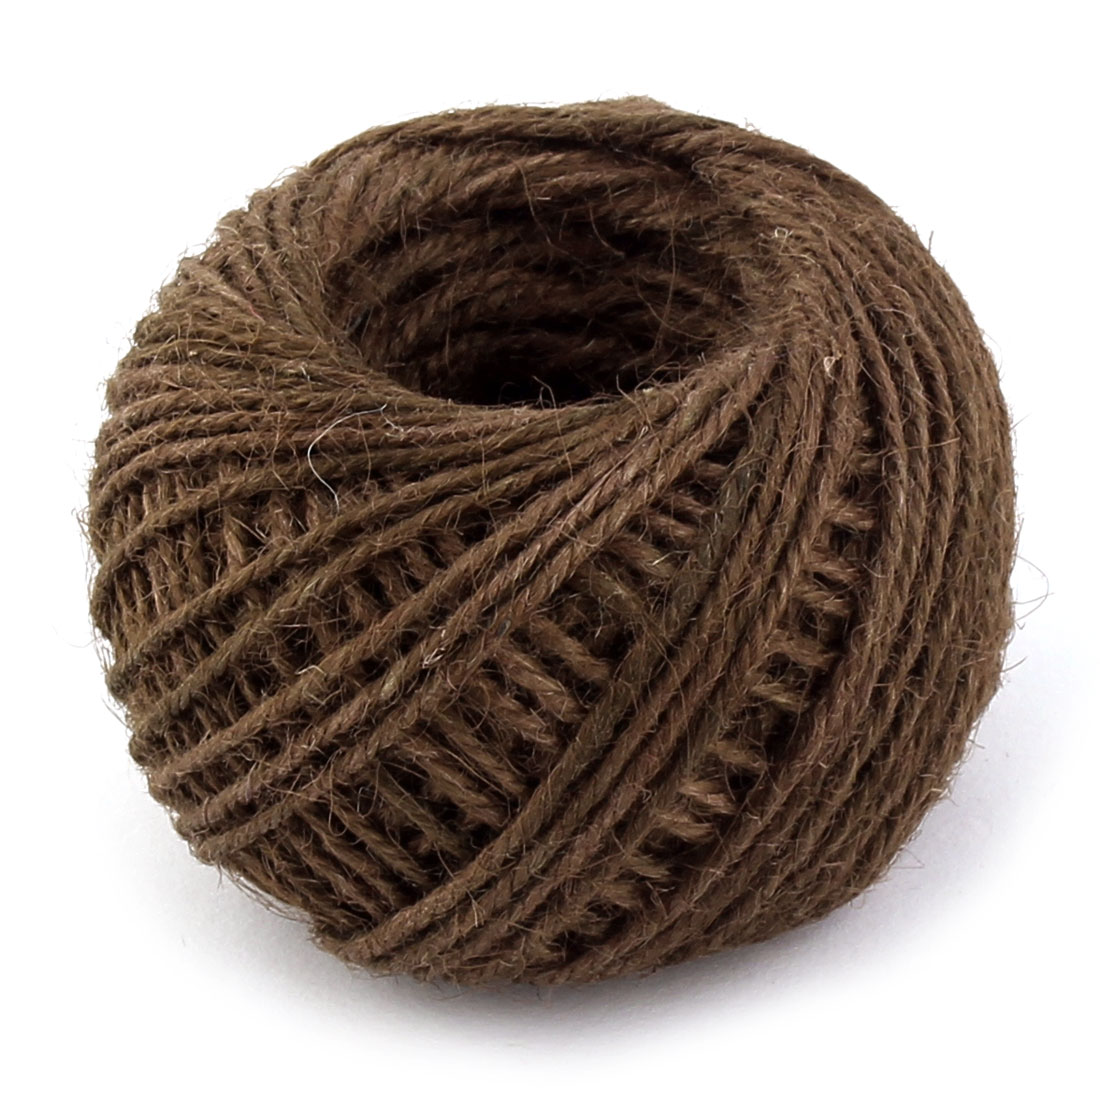 Jute Burlap Ribbon Twine Rope Cord String Wrap Roll Dark Brown 2mm Dia 50m Length